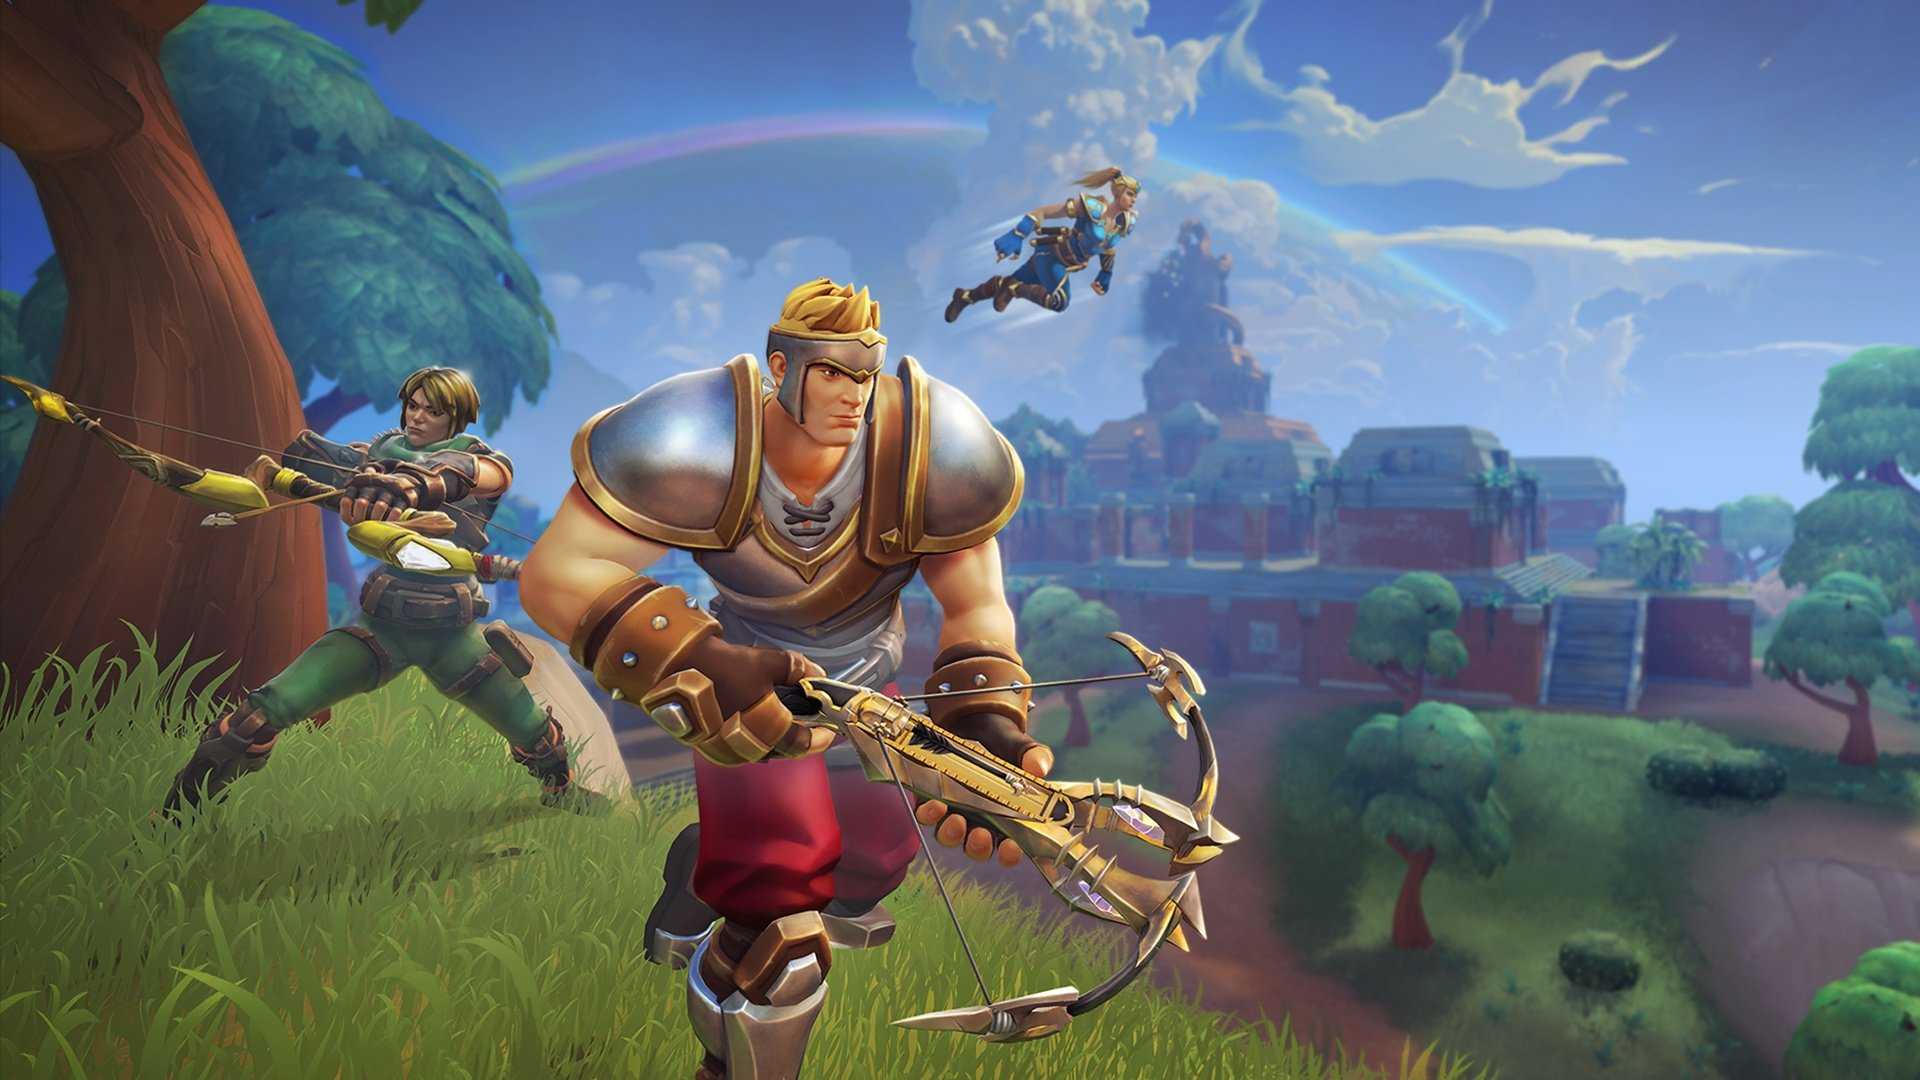 Rumour: Hi-Rez Fantasy Game Realm Royale Is Switch-Bound